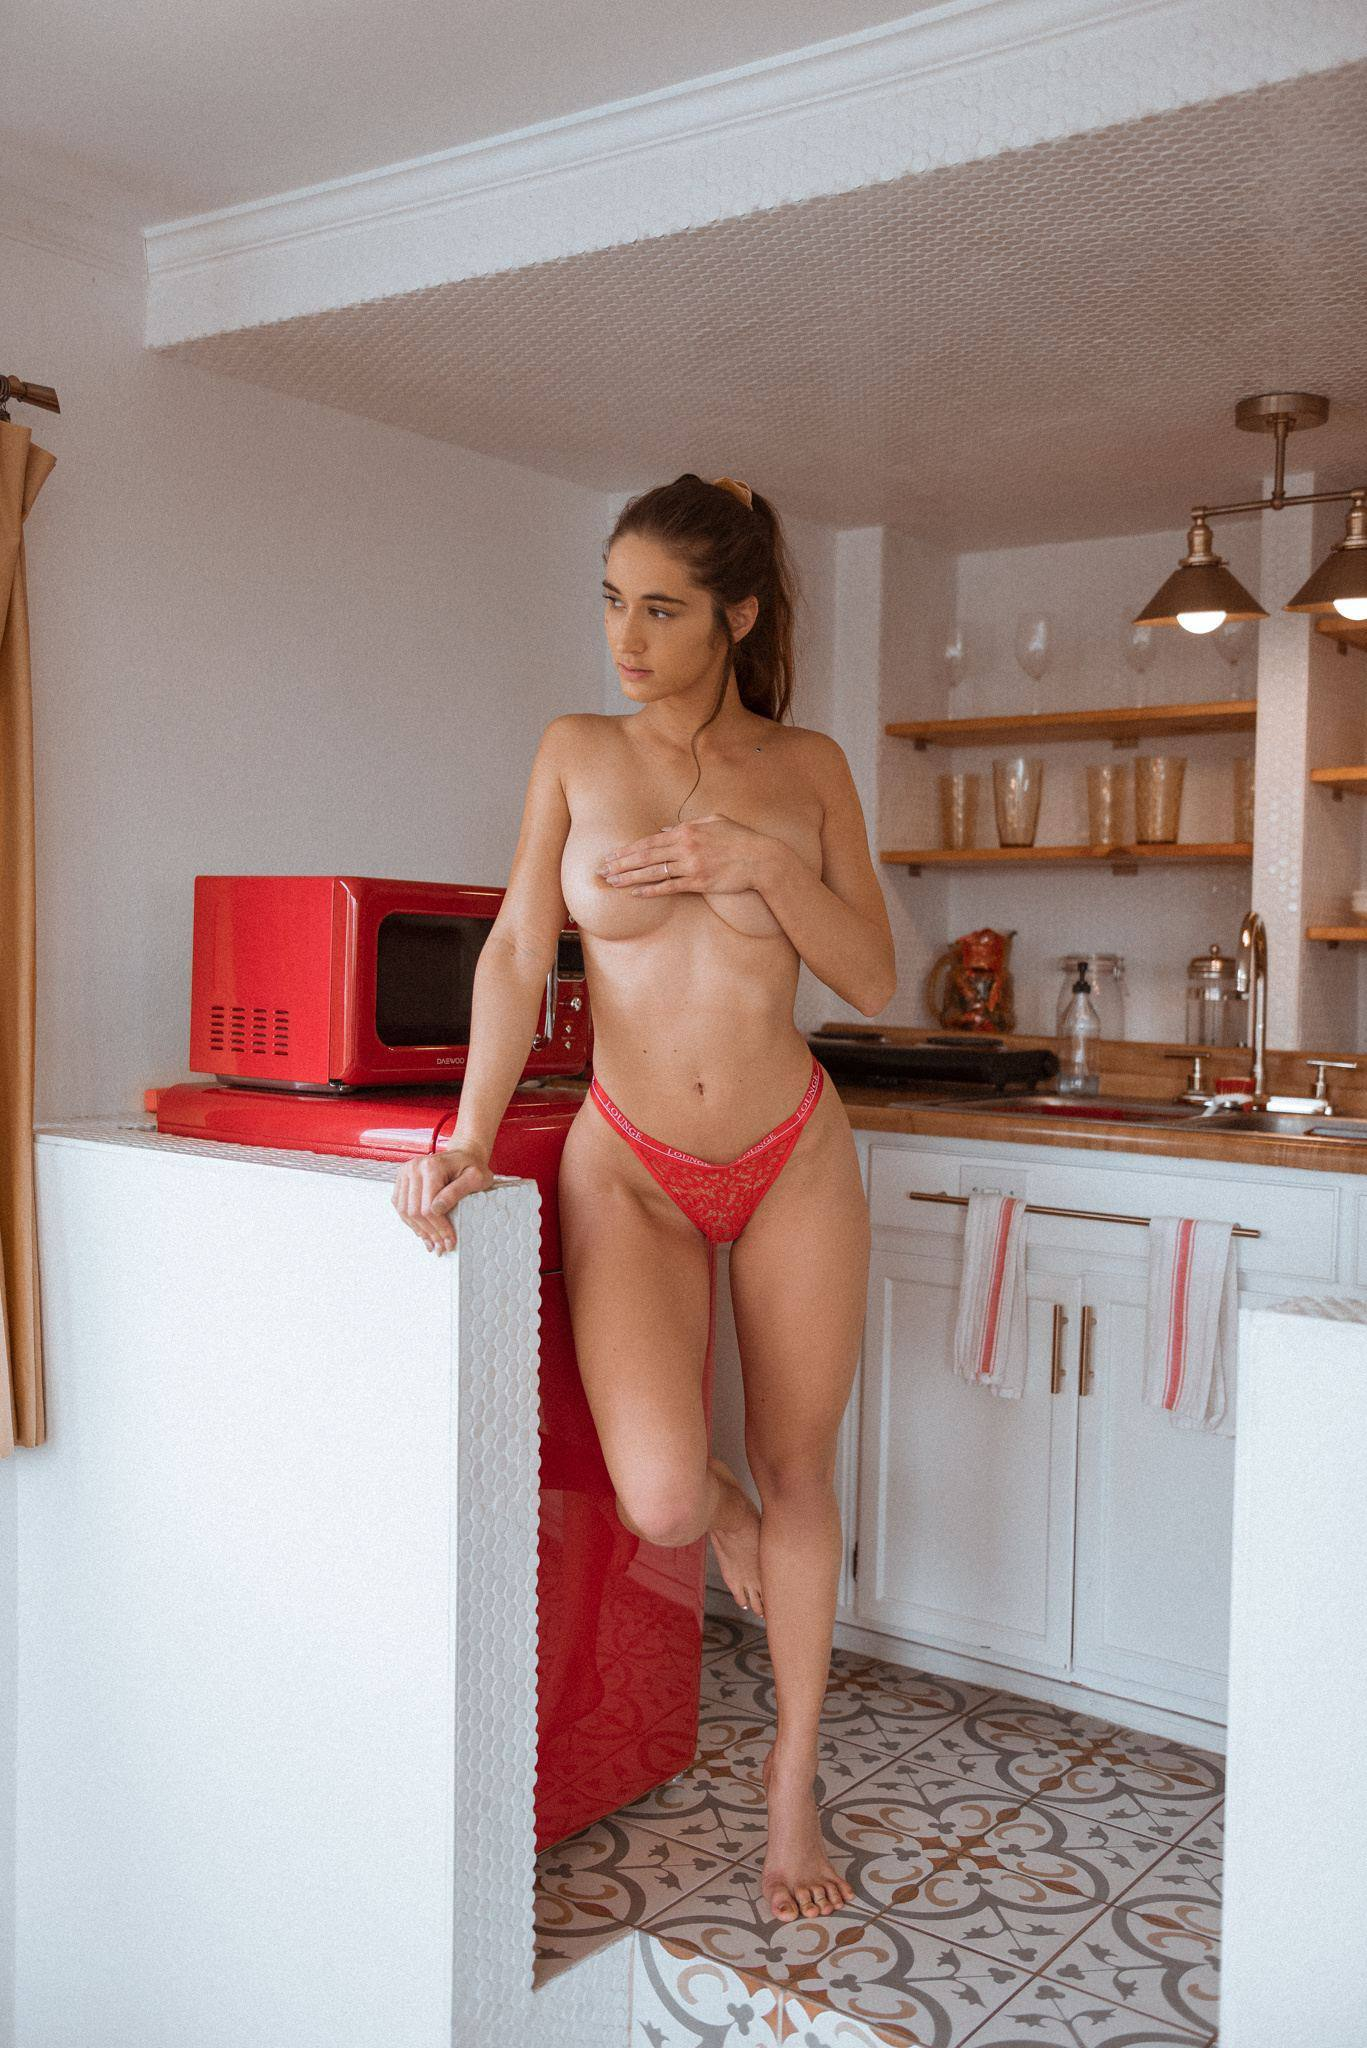 Natalie Roush – Hot Ass And Boobs In Sexy Toples Photoshoot 0003